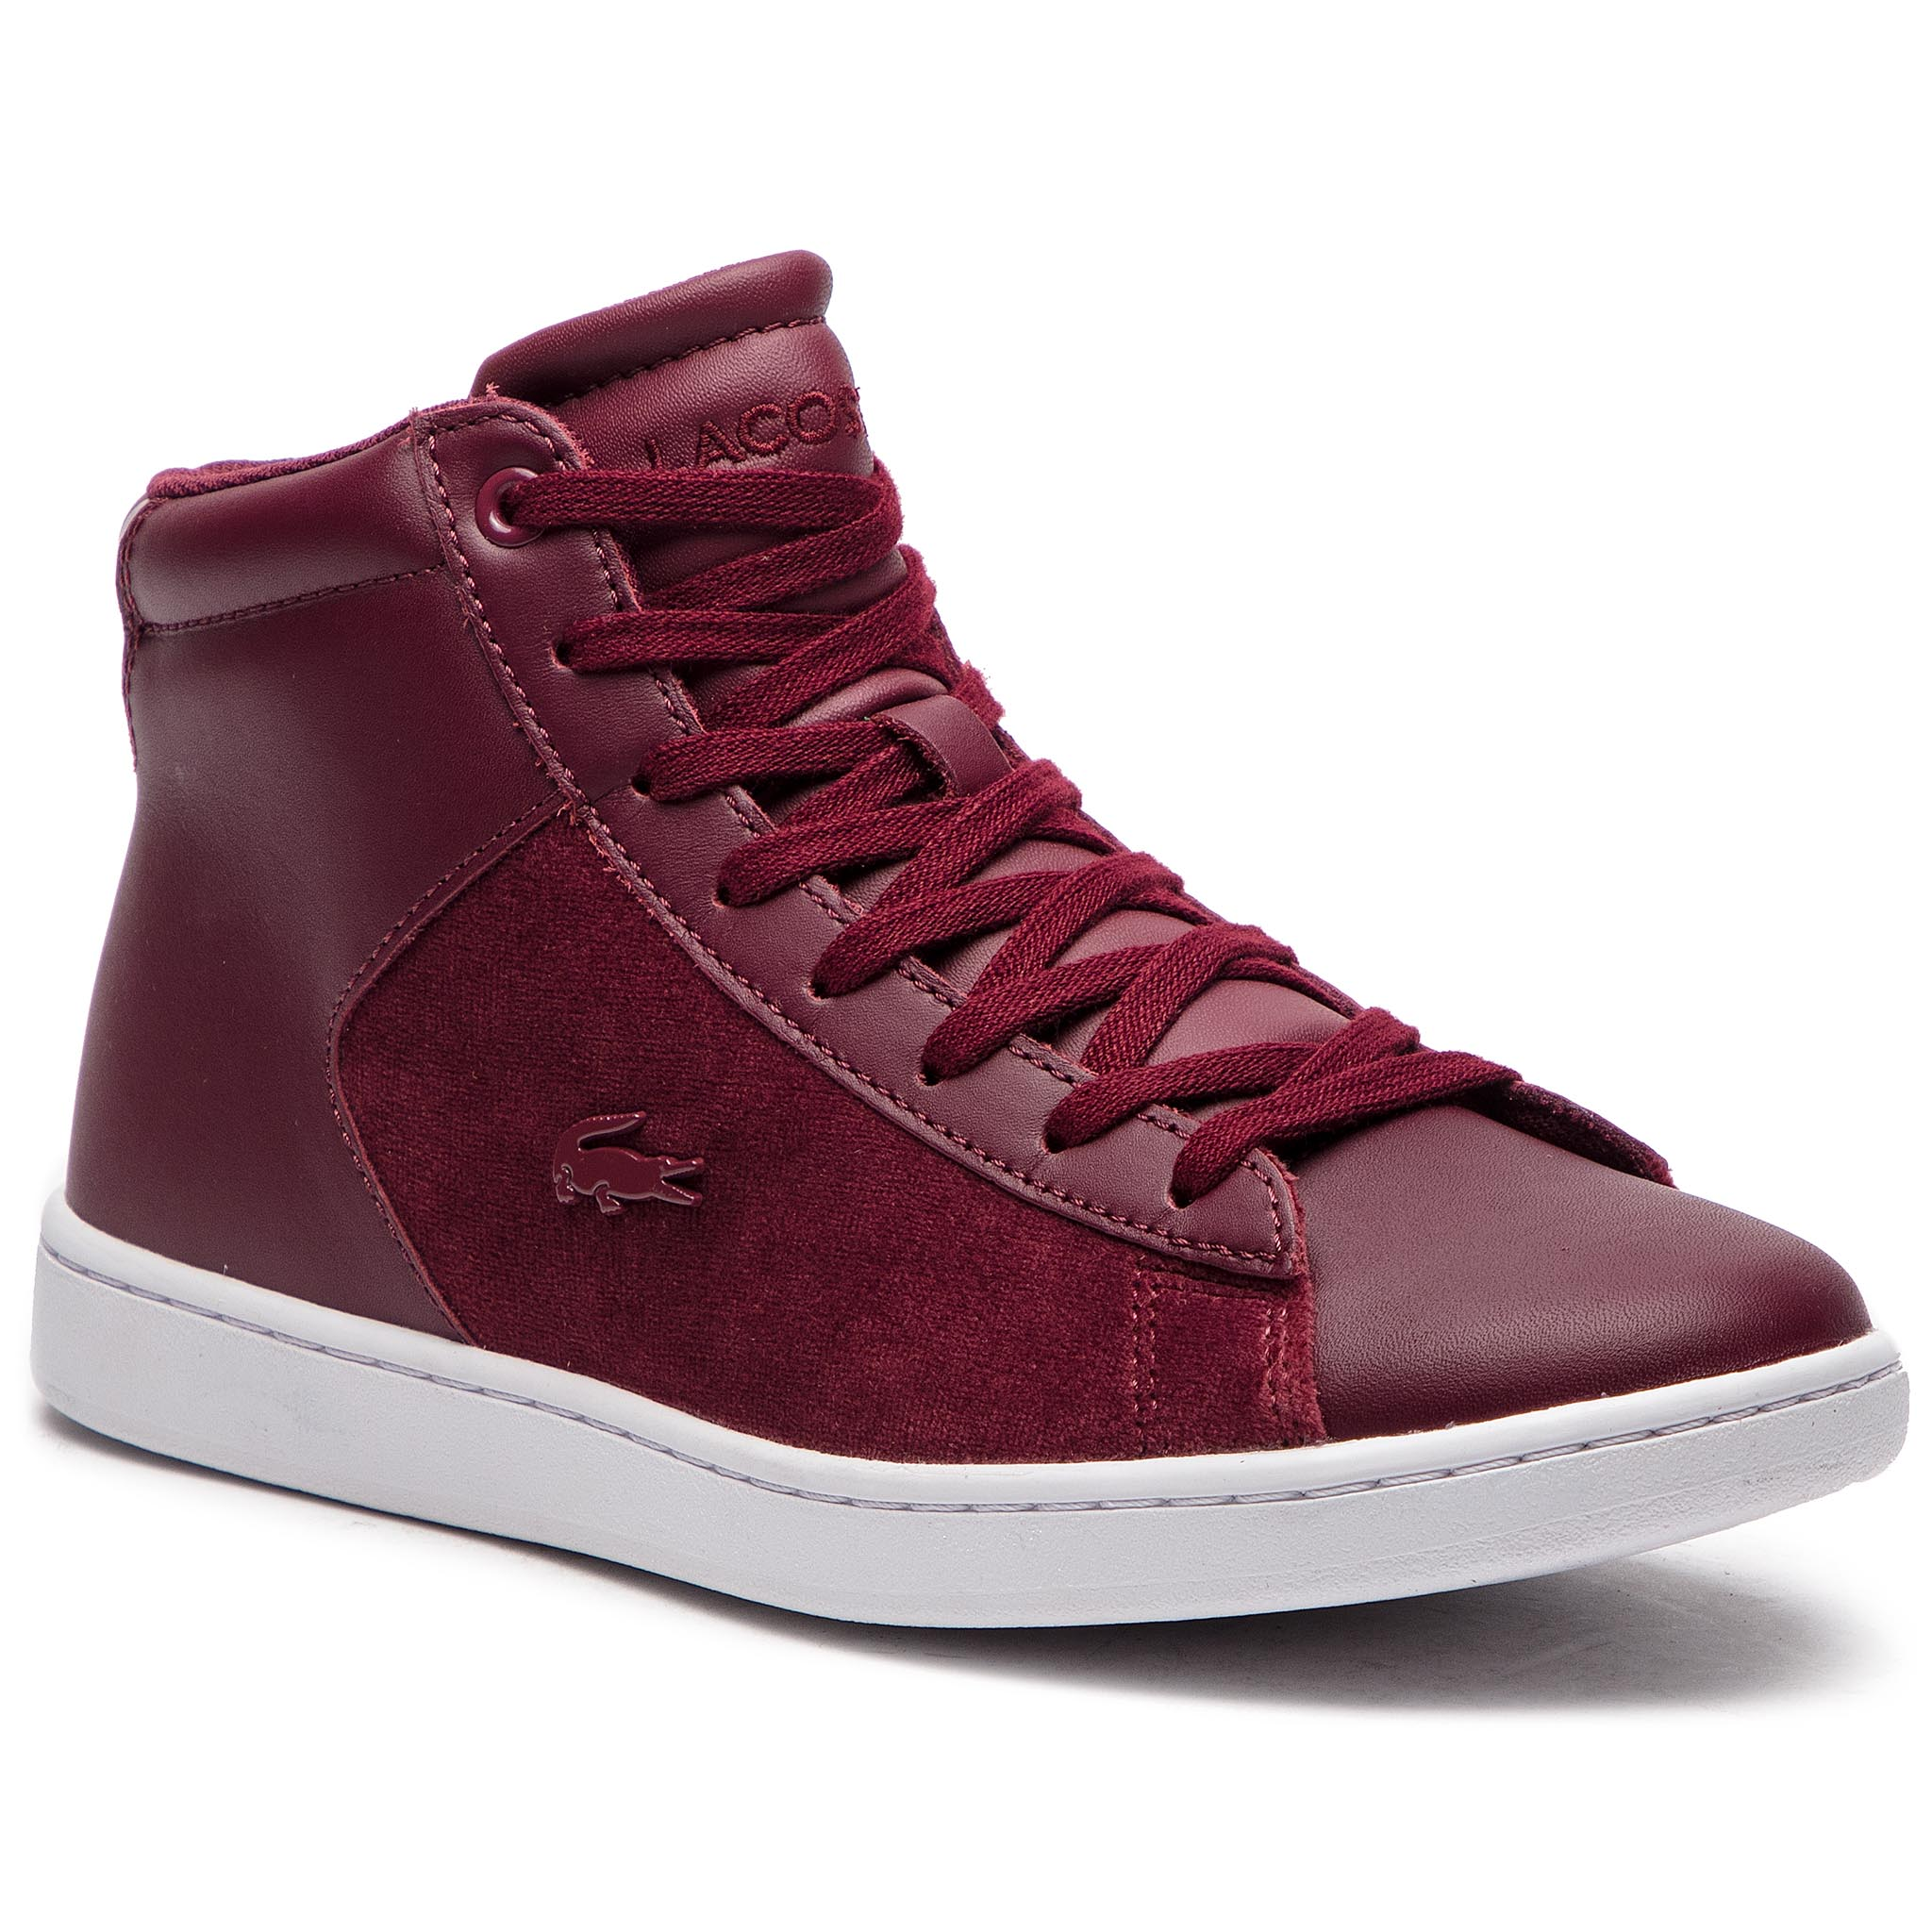 75bc0788bd Lacoste Carnaby Evo Mid 318 1 Spw 7-36SPW00172H2 - Glami.cz